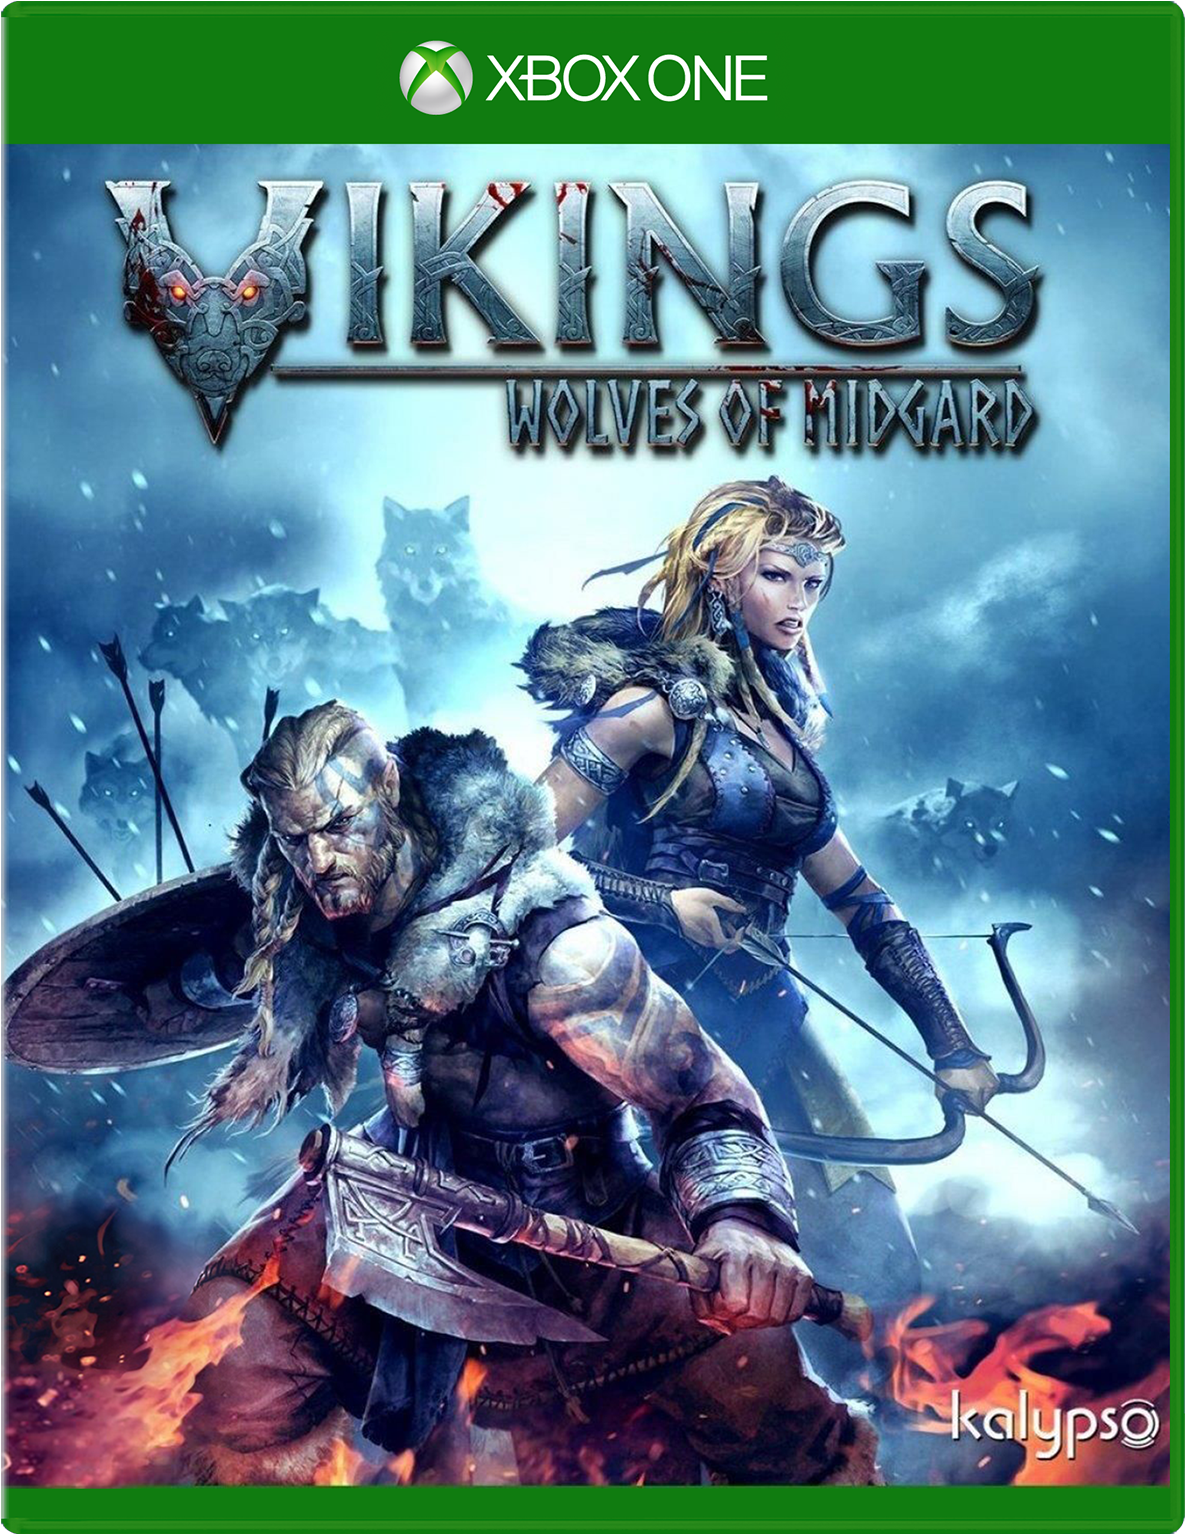 Vikings - Wolves of Midgard for Xbox One